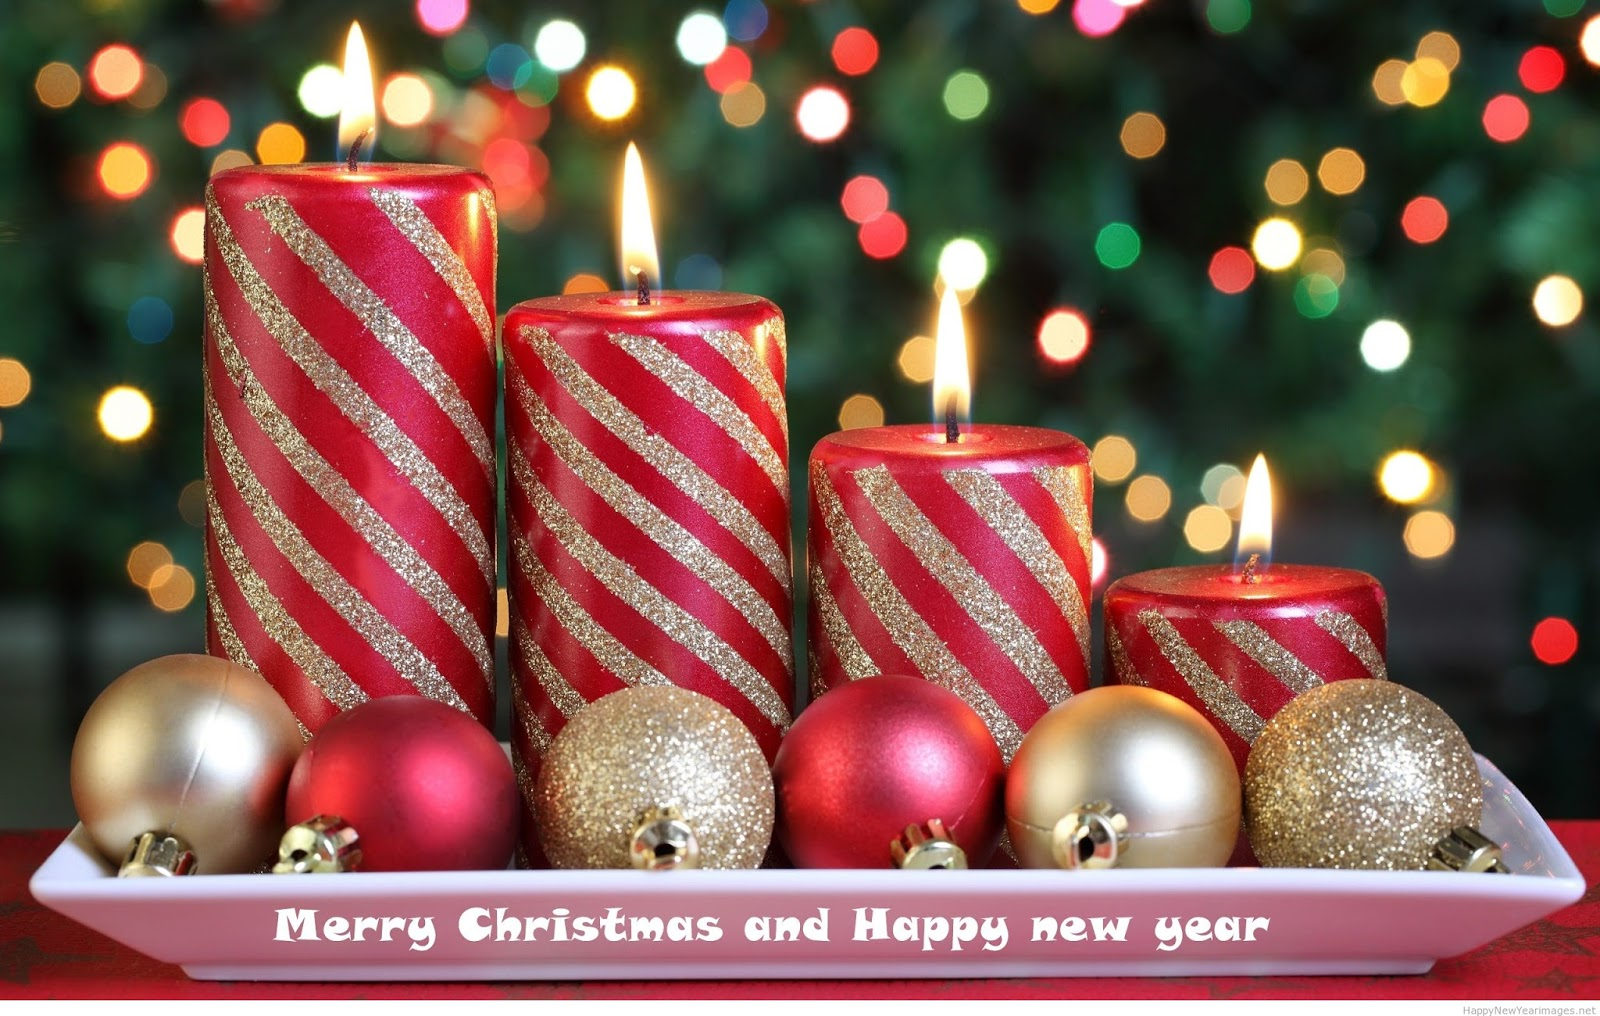 Christmas hd images wallpapers download merry christmas quotes for friends christmas wishes xmas kristyandbryce Gallery